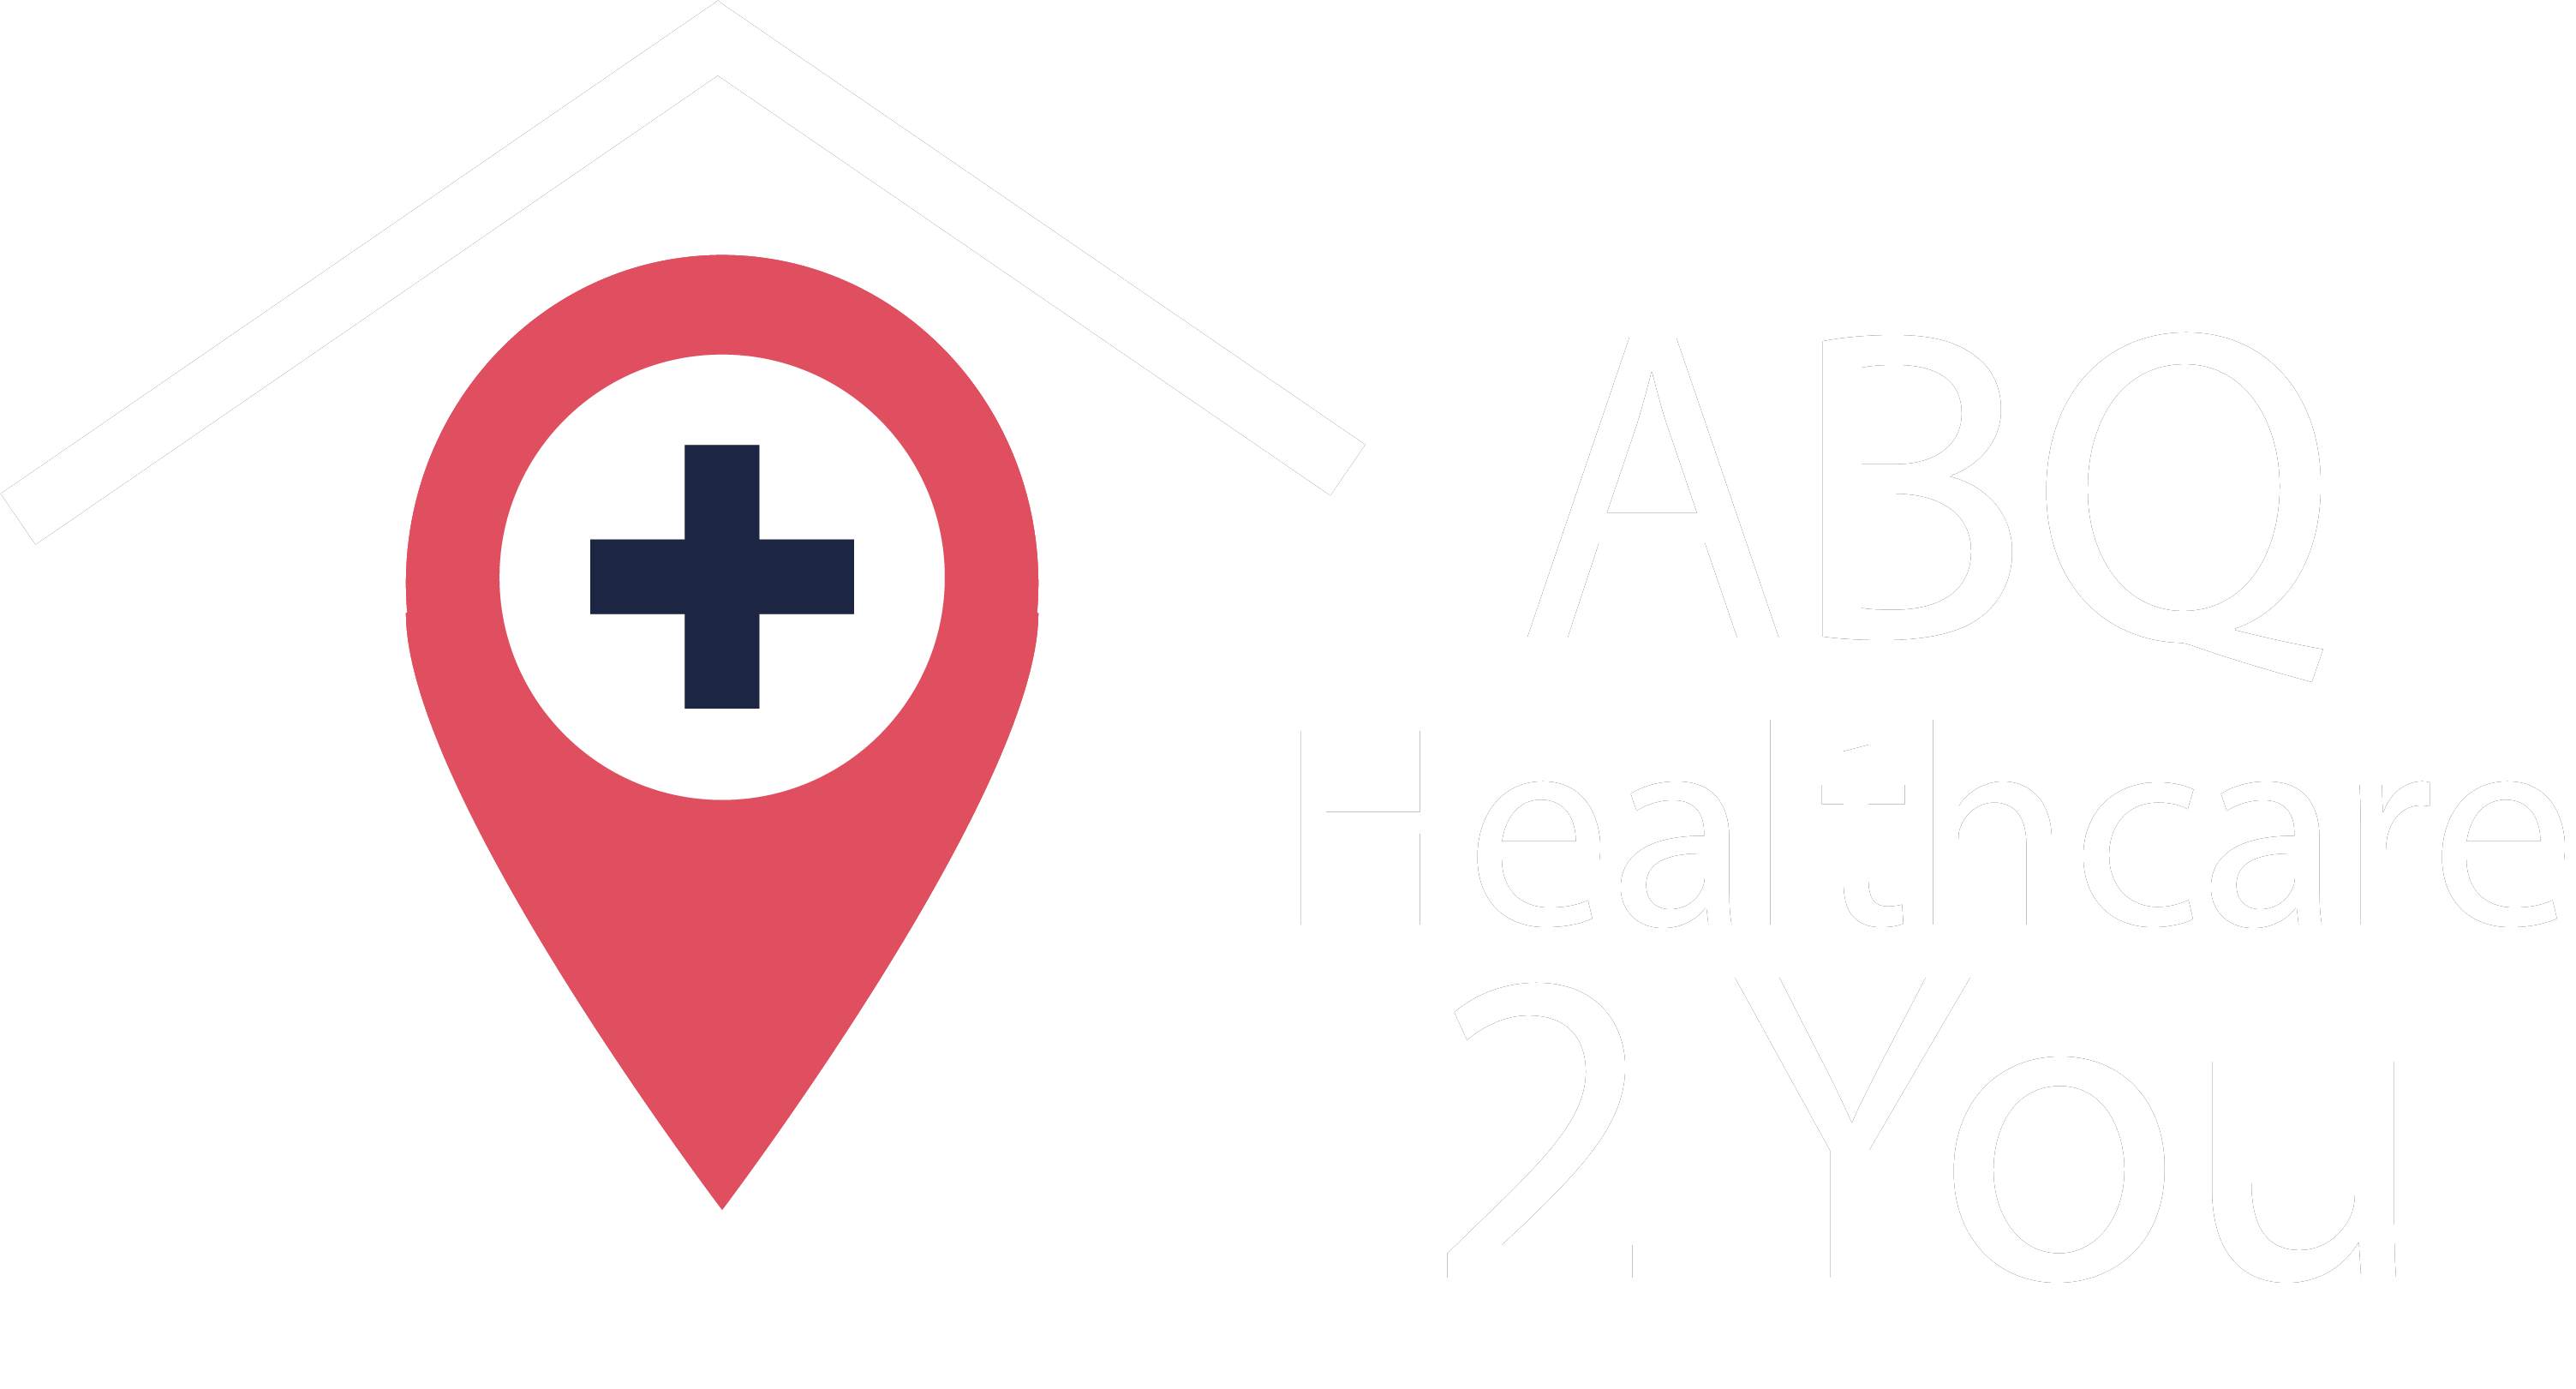 ABQ Healthcare2You